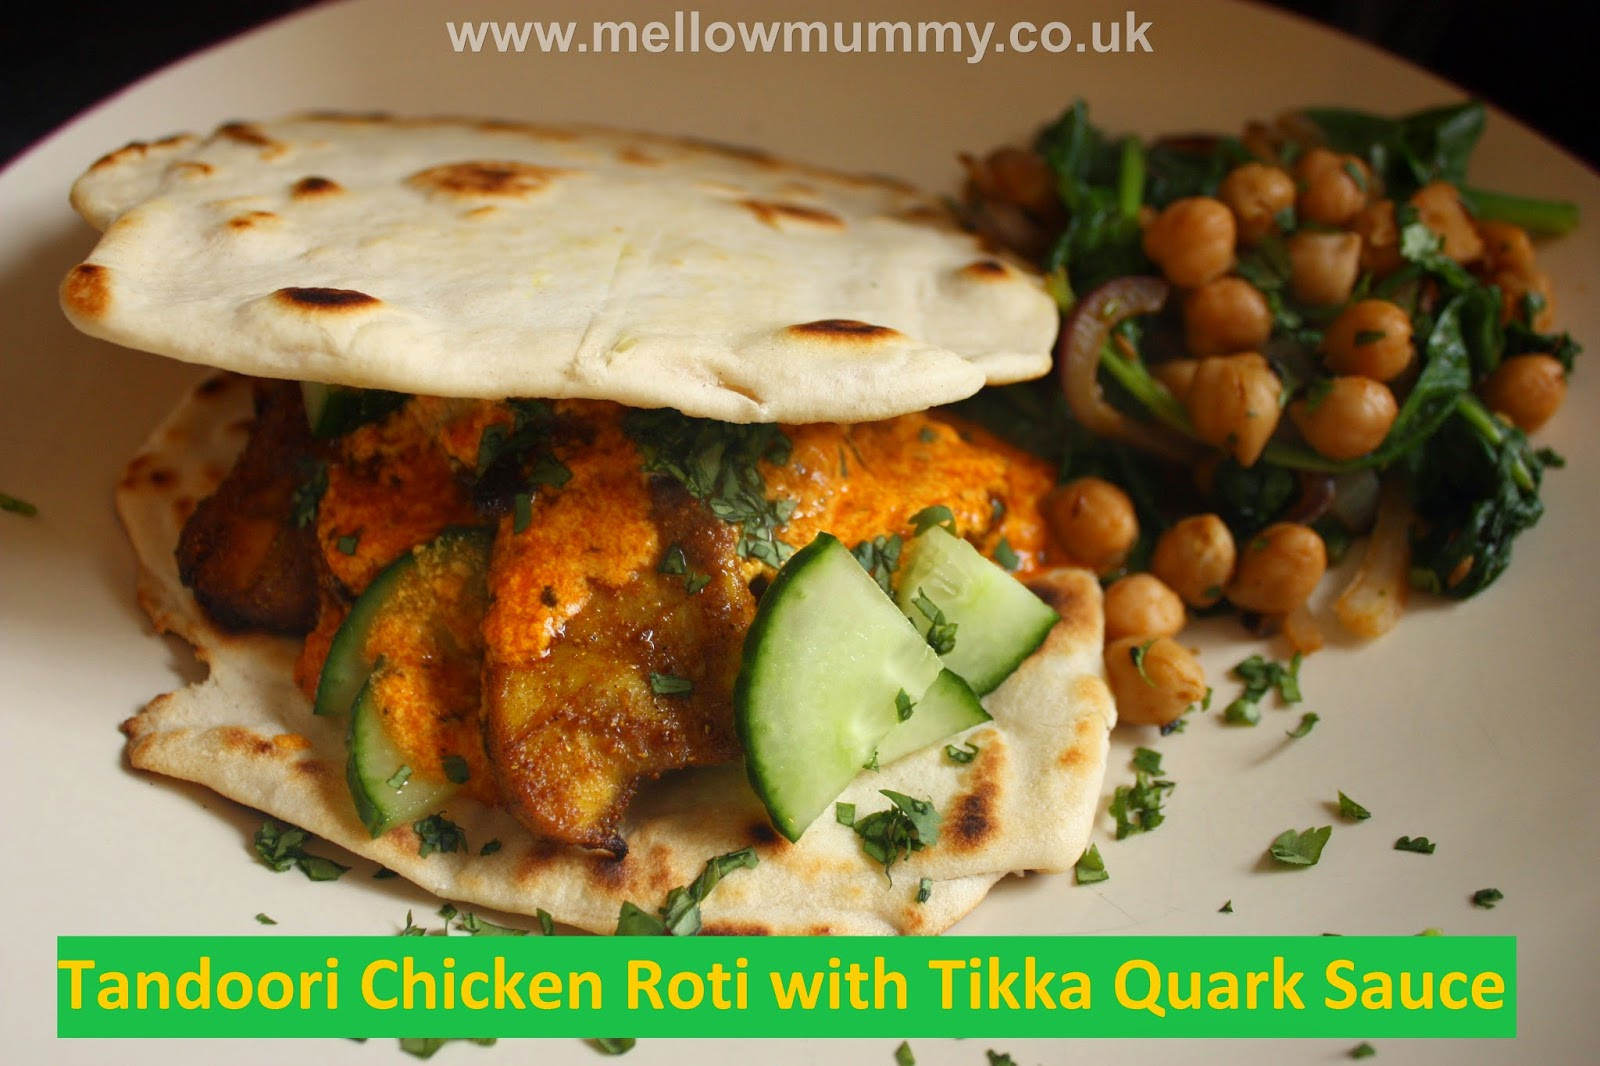 Tandoori chicken roti with Tikka quark sauce